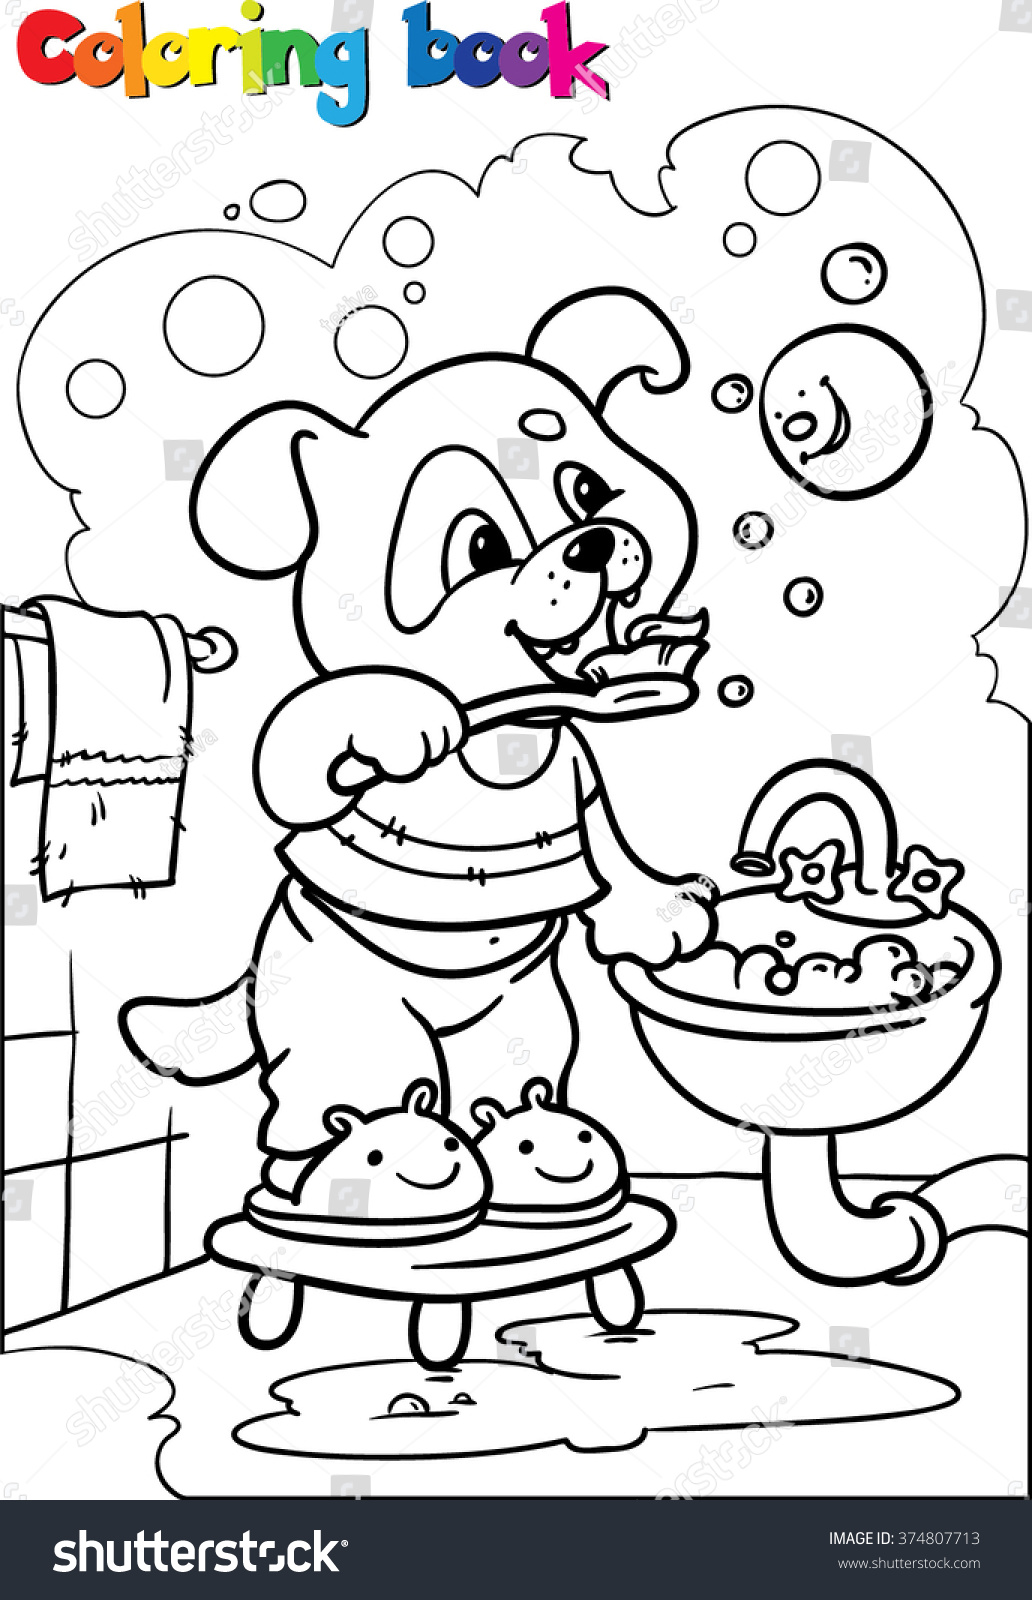 Coloring Book Puppy Brushing His Teeth Stock Vector Royalty Free